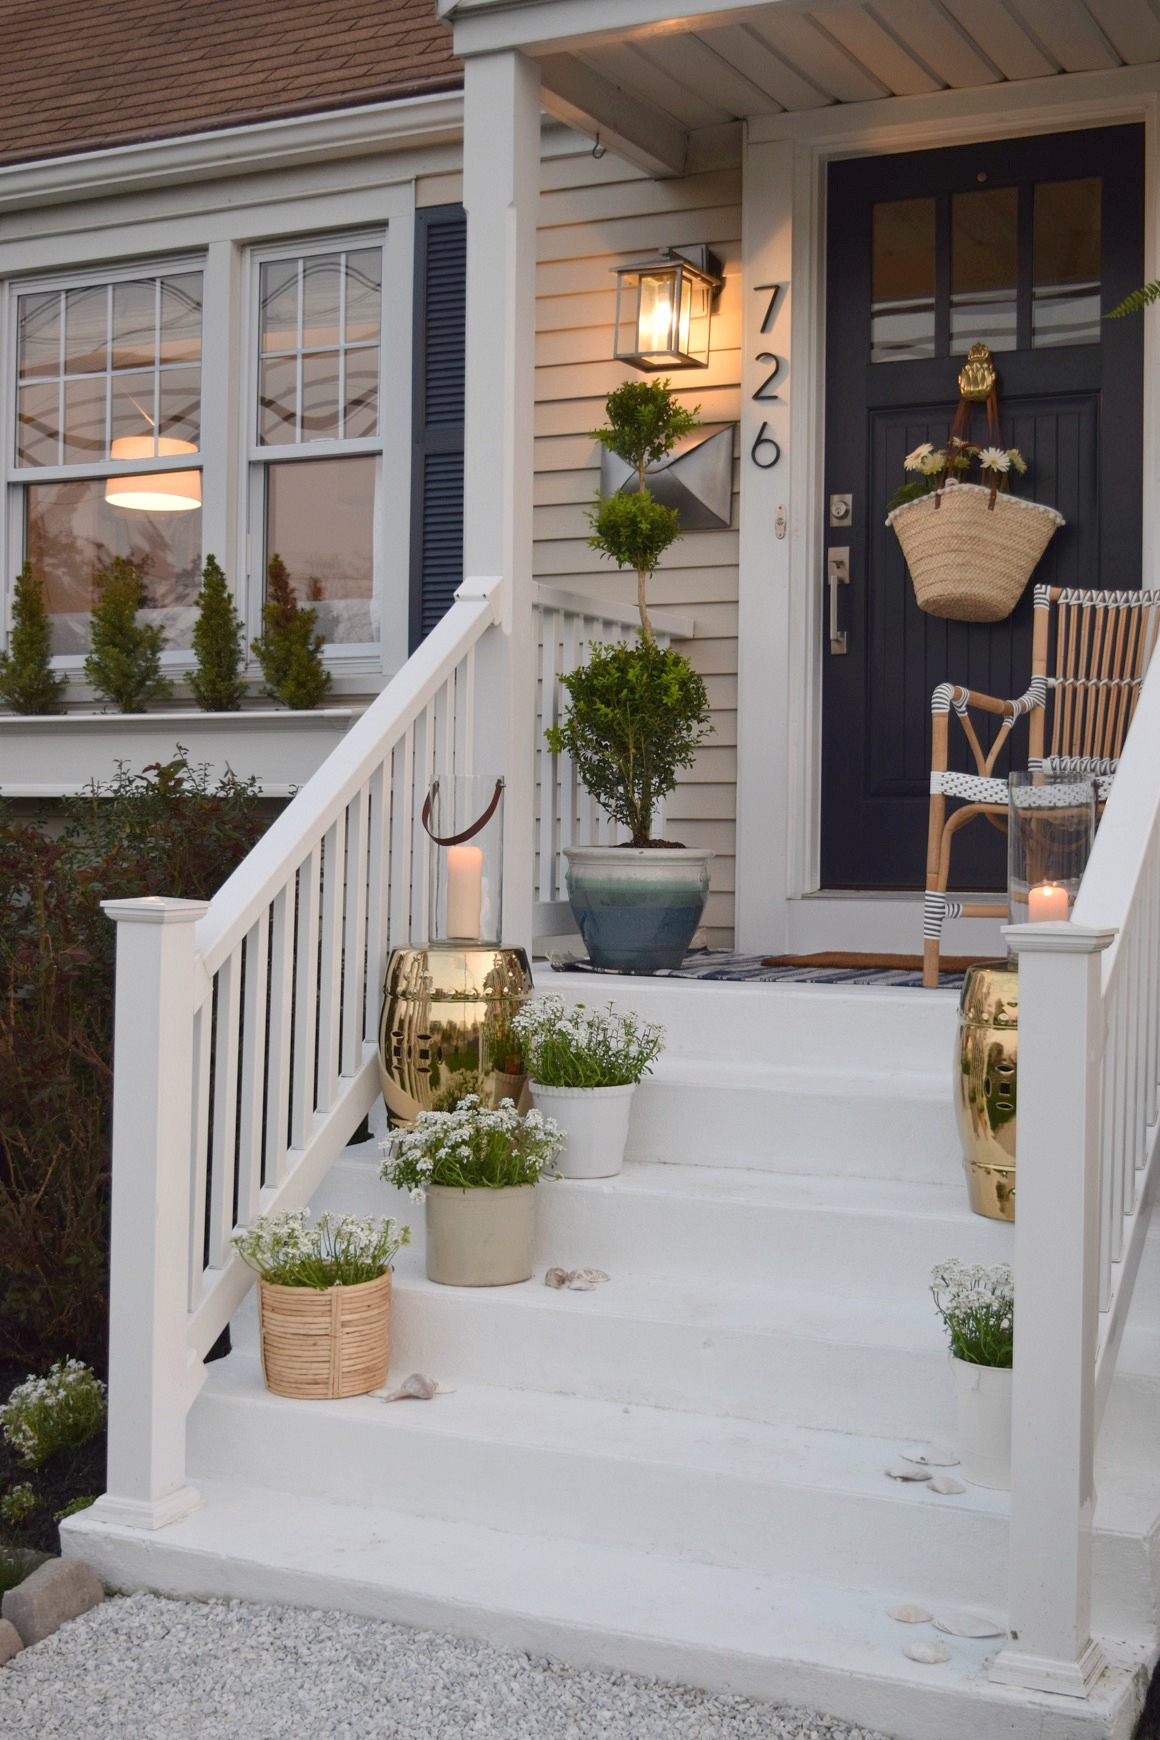 Front Porch Ideas See Inside The 24 Best Front Entry Porch Ideas - House Plans